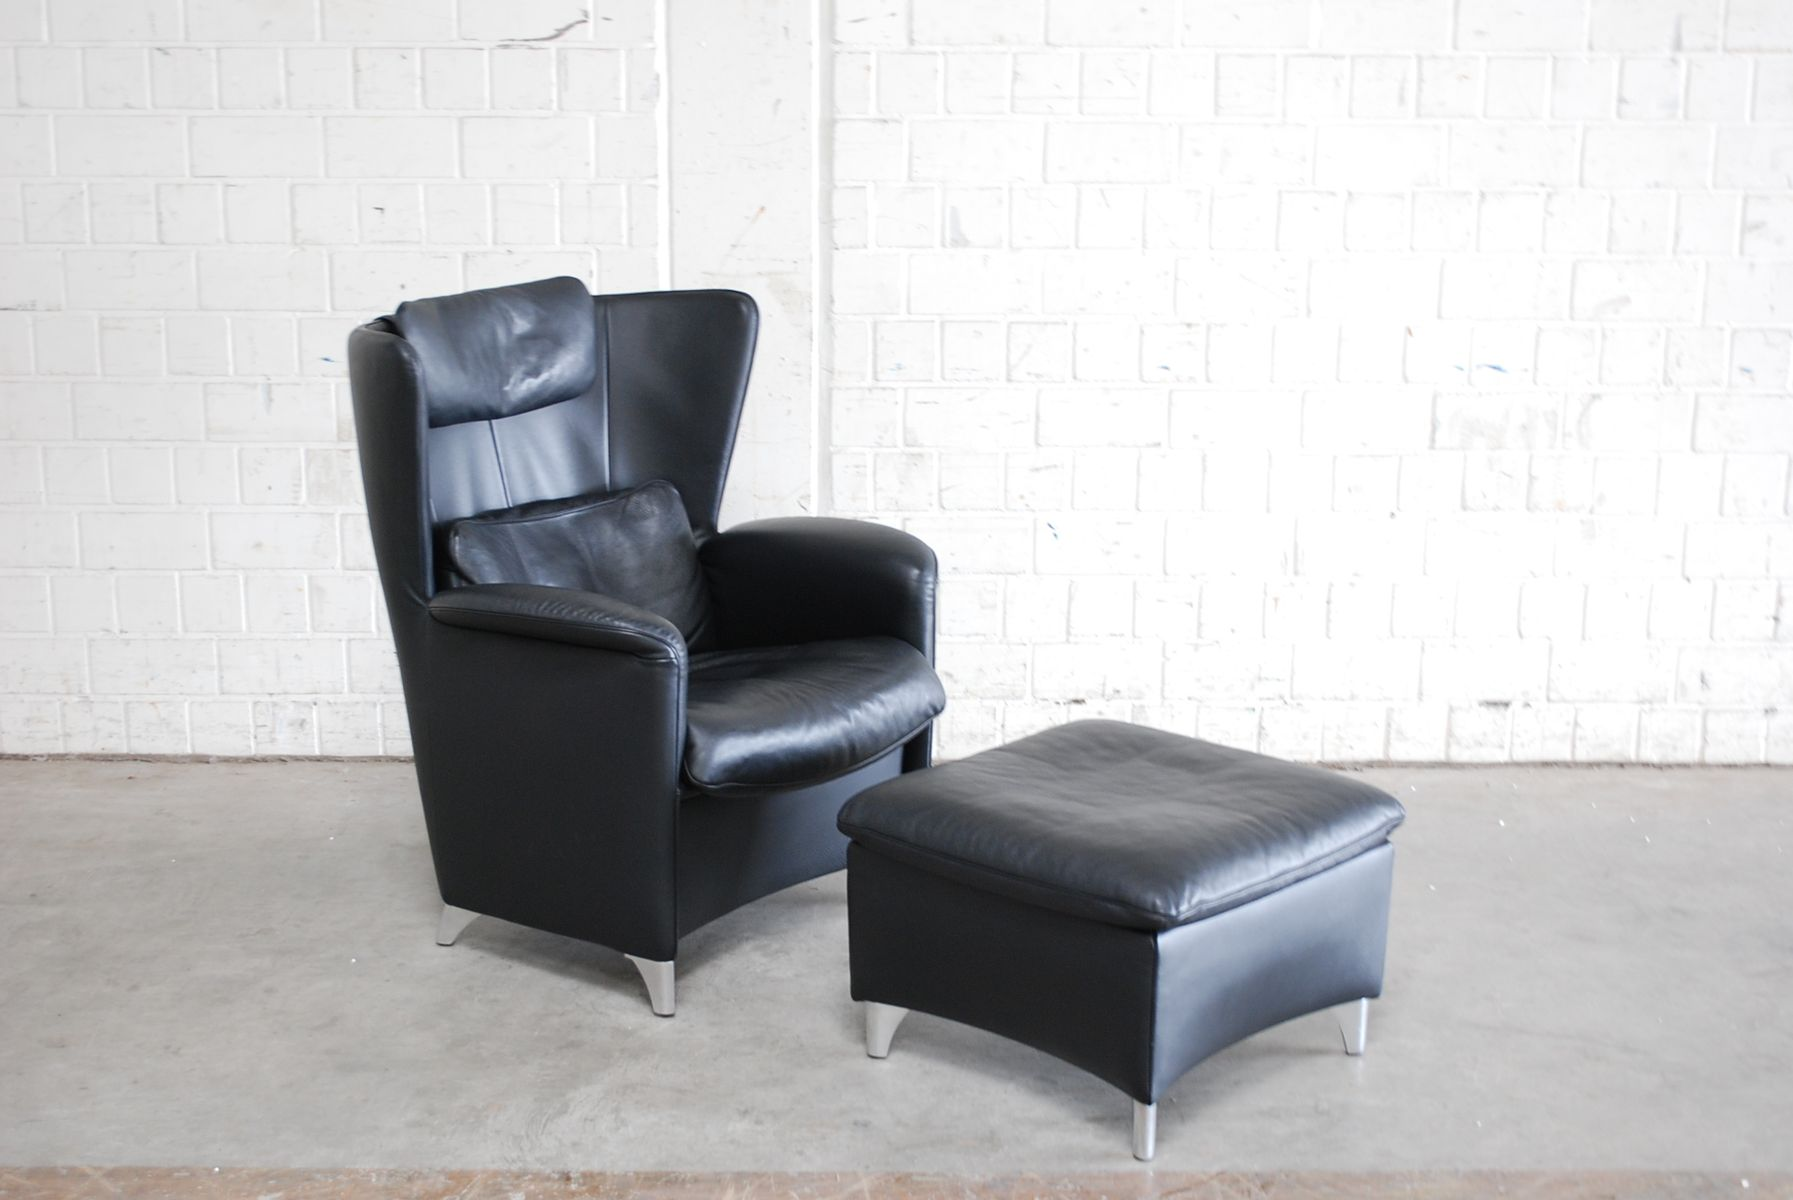 Black DS 23 Wingback Lounge Chair & Ottoman by Franz Schulte for